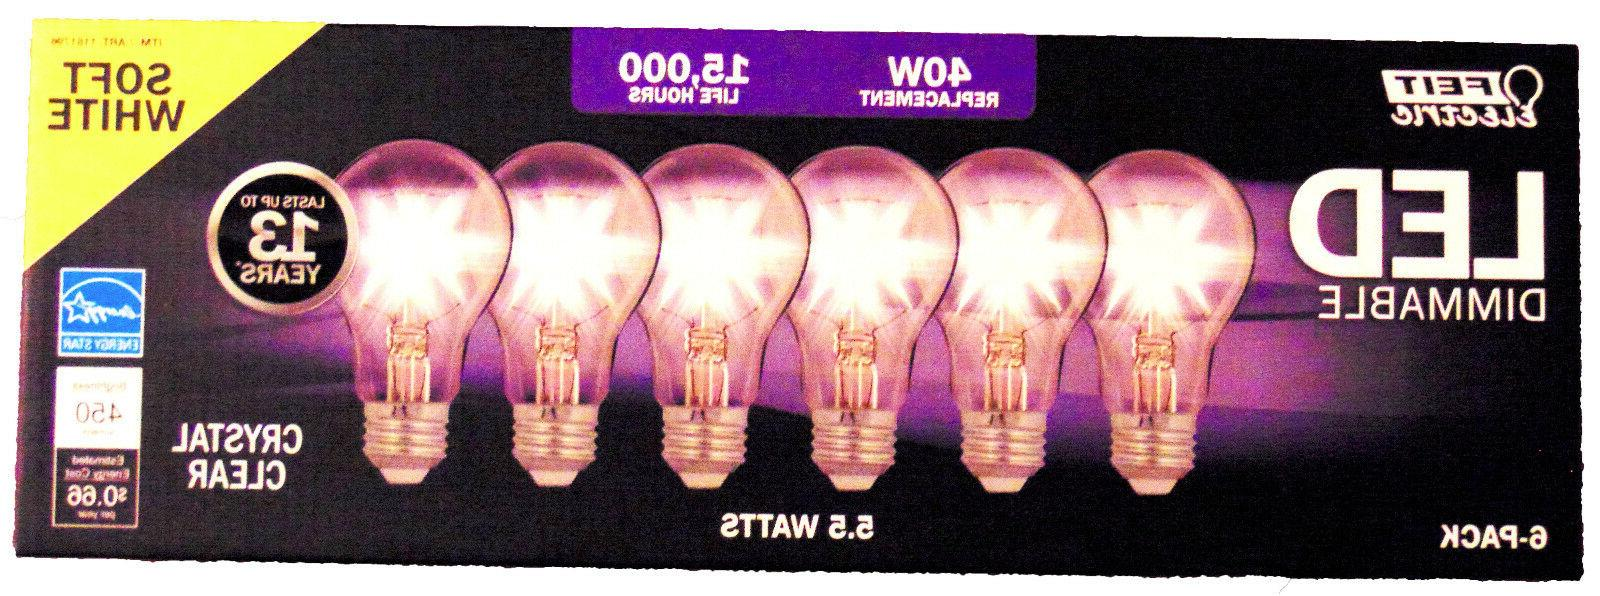 FEIT Dimable Replacement Bulbs using 4.5W Soft 6